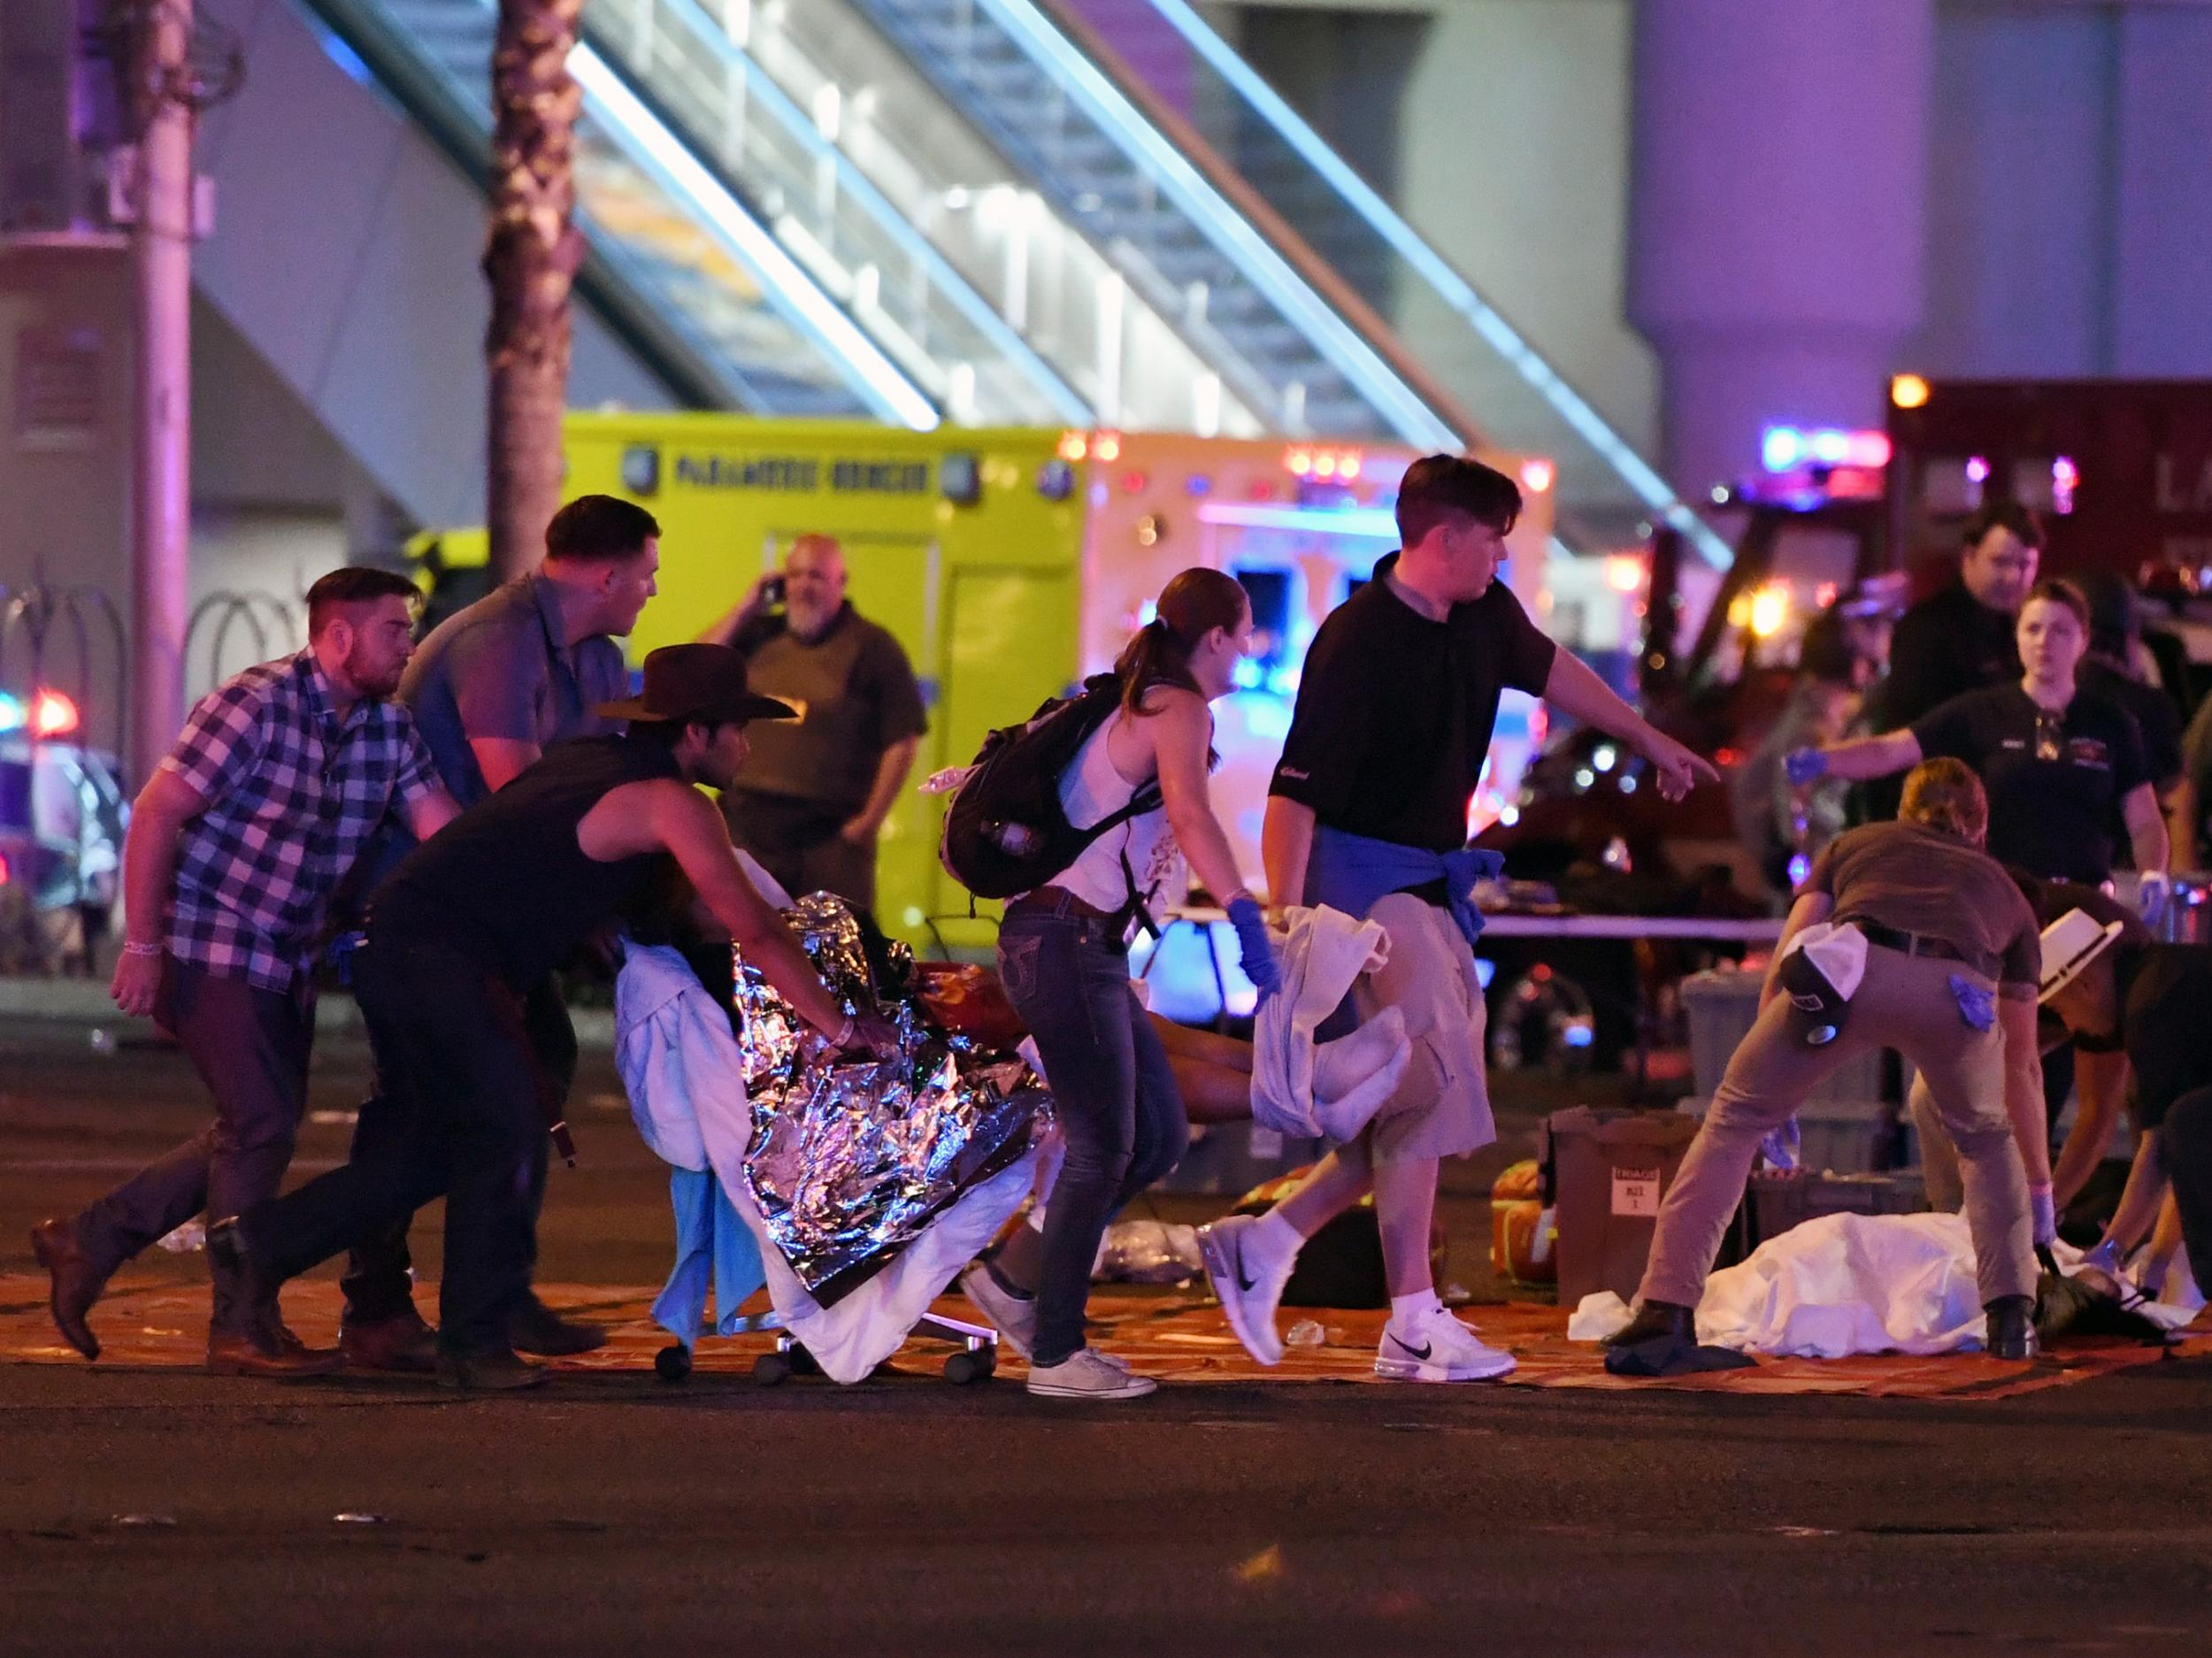 Nevada state law defines Las Vegas mass shooting as an act of